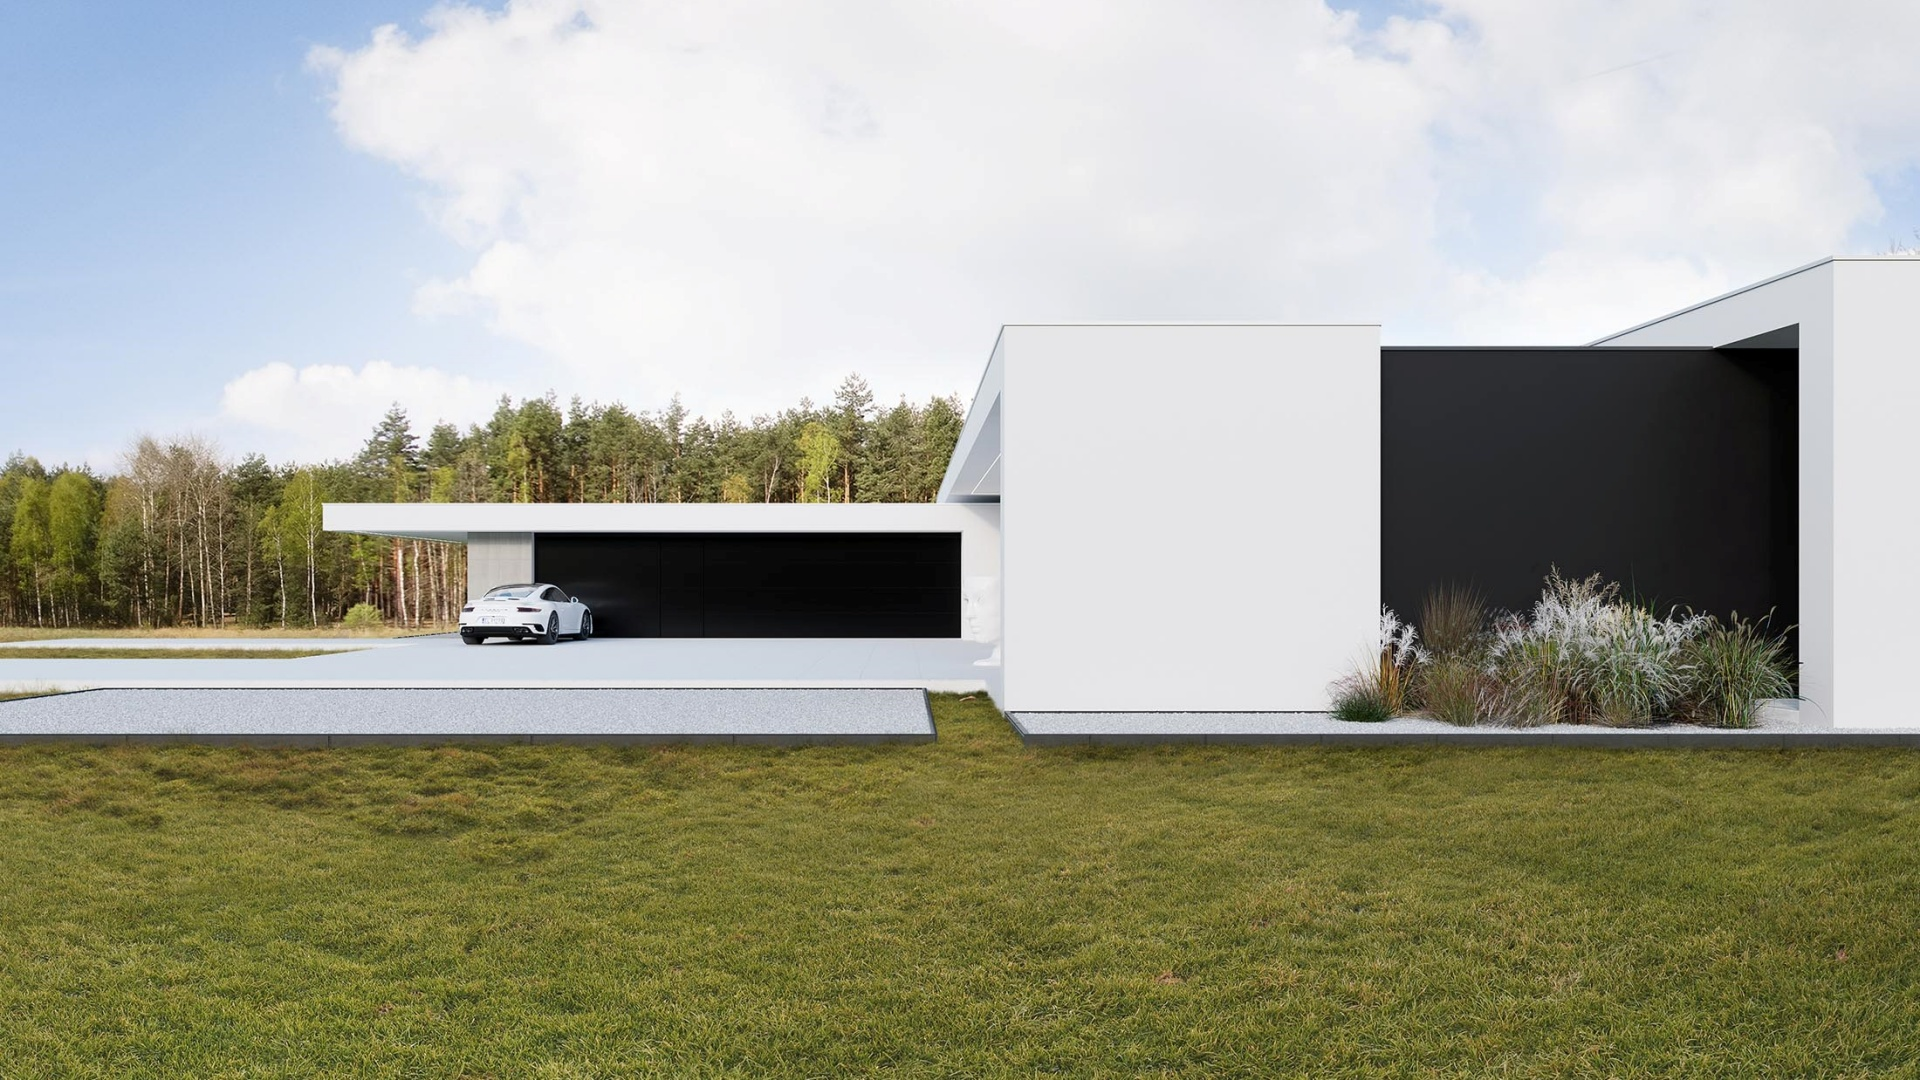 RE: DOUBLE L HOUSE projektu architekta Marcina Tomaszewskiego REFORM Architekt